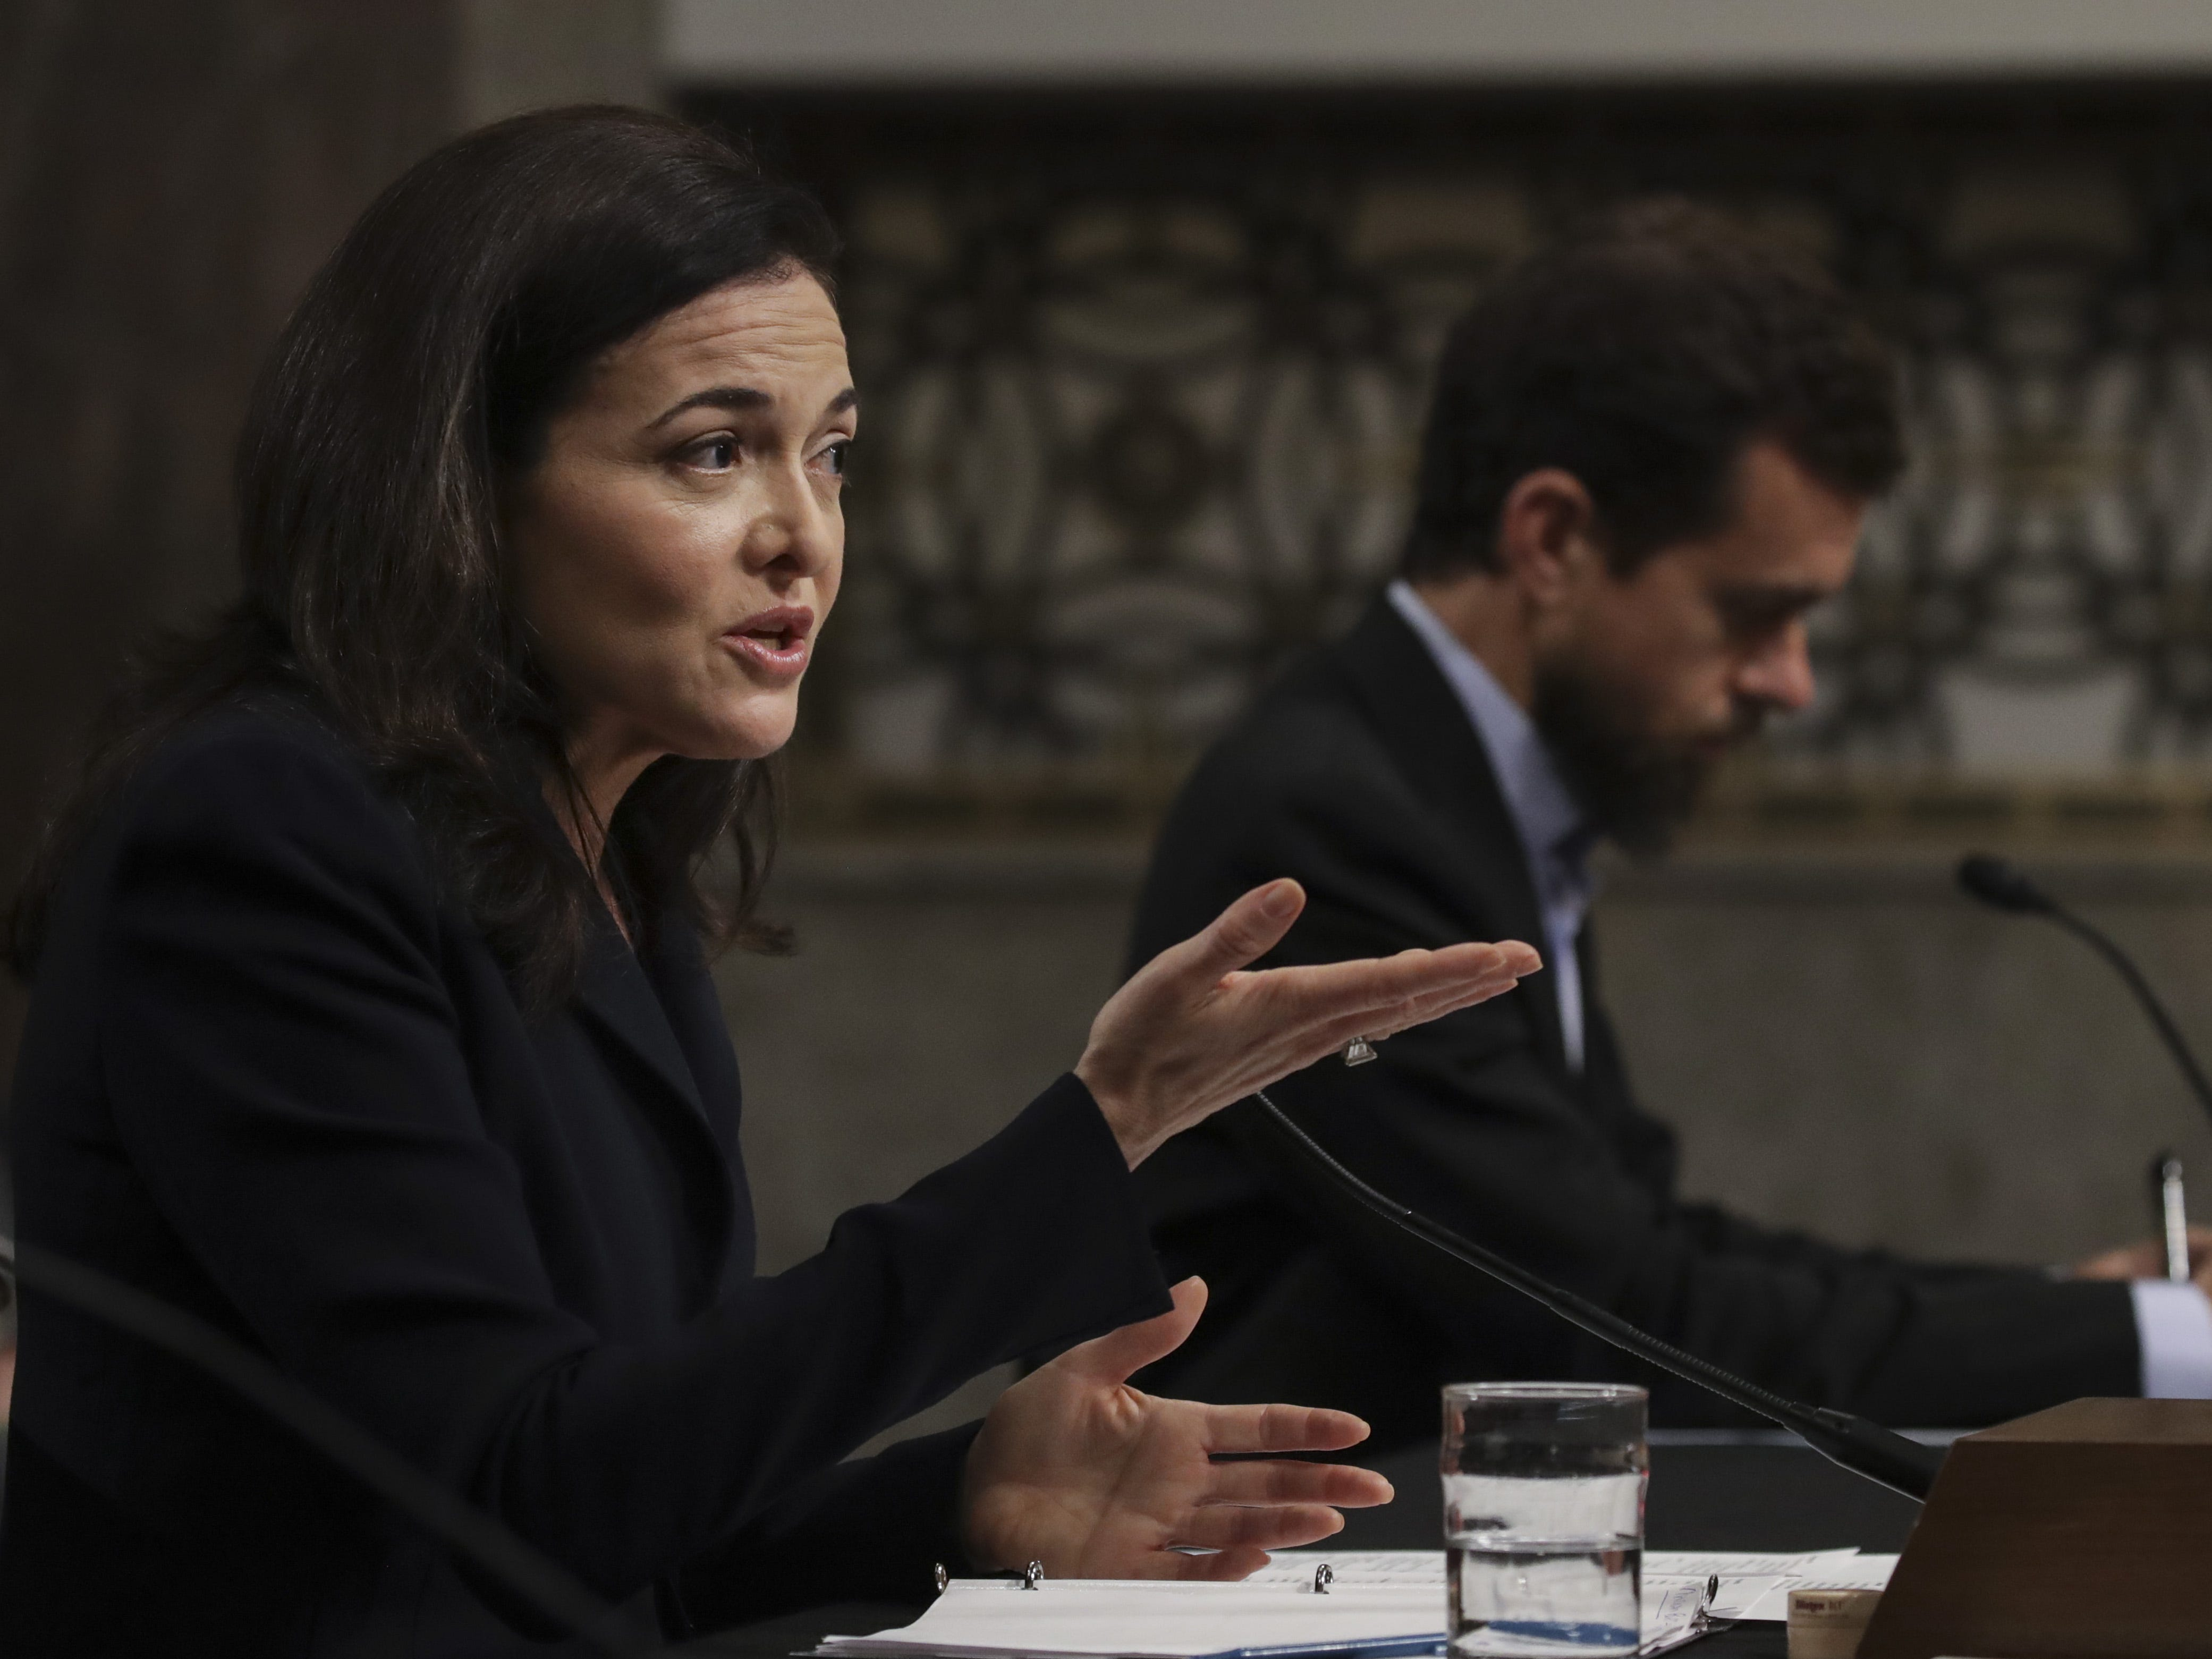 WASHINGTON, DC - SEPTEMBER 5: (L-R) Facebook chief operating officer Sheryl Sandberg and Twitter chief executive officer Jack Dorsey testify during a Senate Intelligence Committee hearing concerning foreign influence operations' use of social media platforms, on Capitol Hill, September 5, 2018 in Washington, DC. Twitter CEO Jack Dorsey and Facebook chief operating officer Sheryl Sandberg faced questions about how foreign operatives use their platforms in attempts to influence and manipulate public opinion. (Photo by Drew Angerer/Getty Images) ORG XMIT: 775221603 ORIG FILE ID: 1027071030